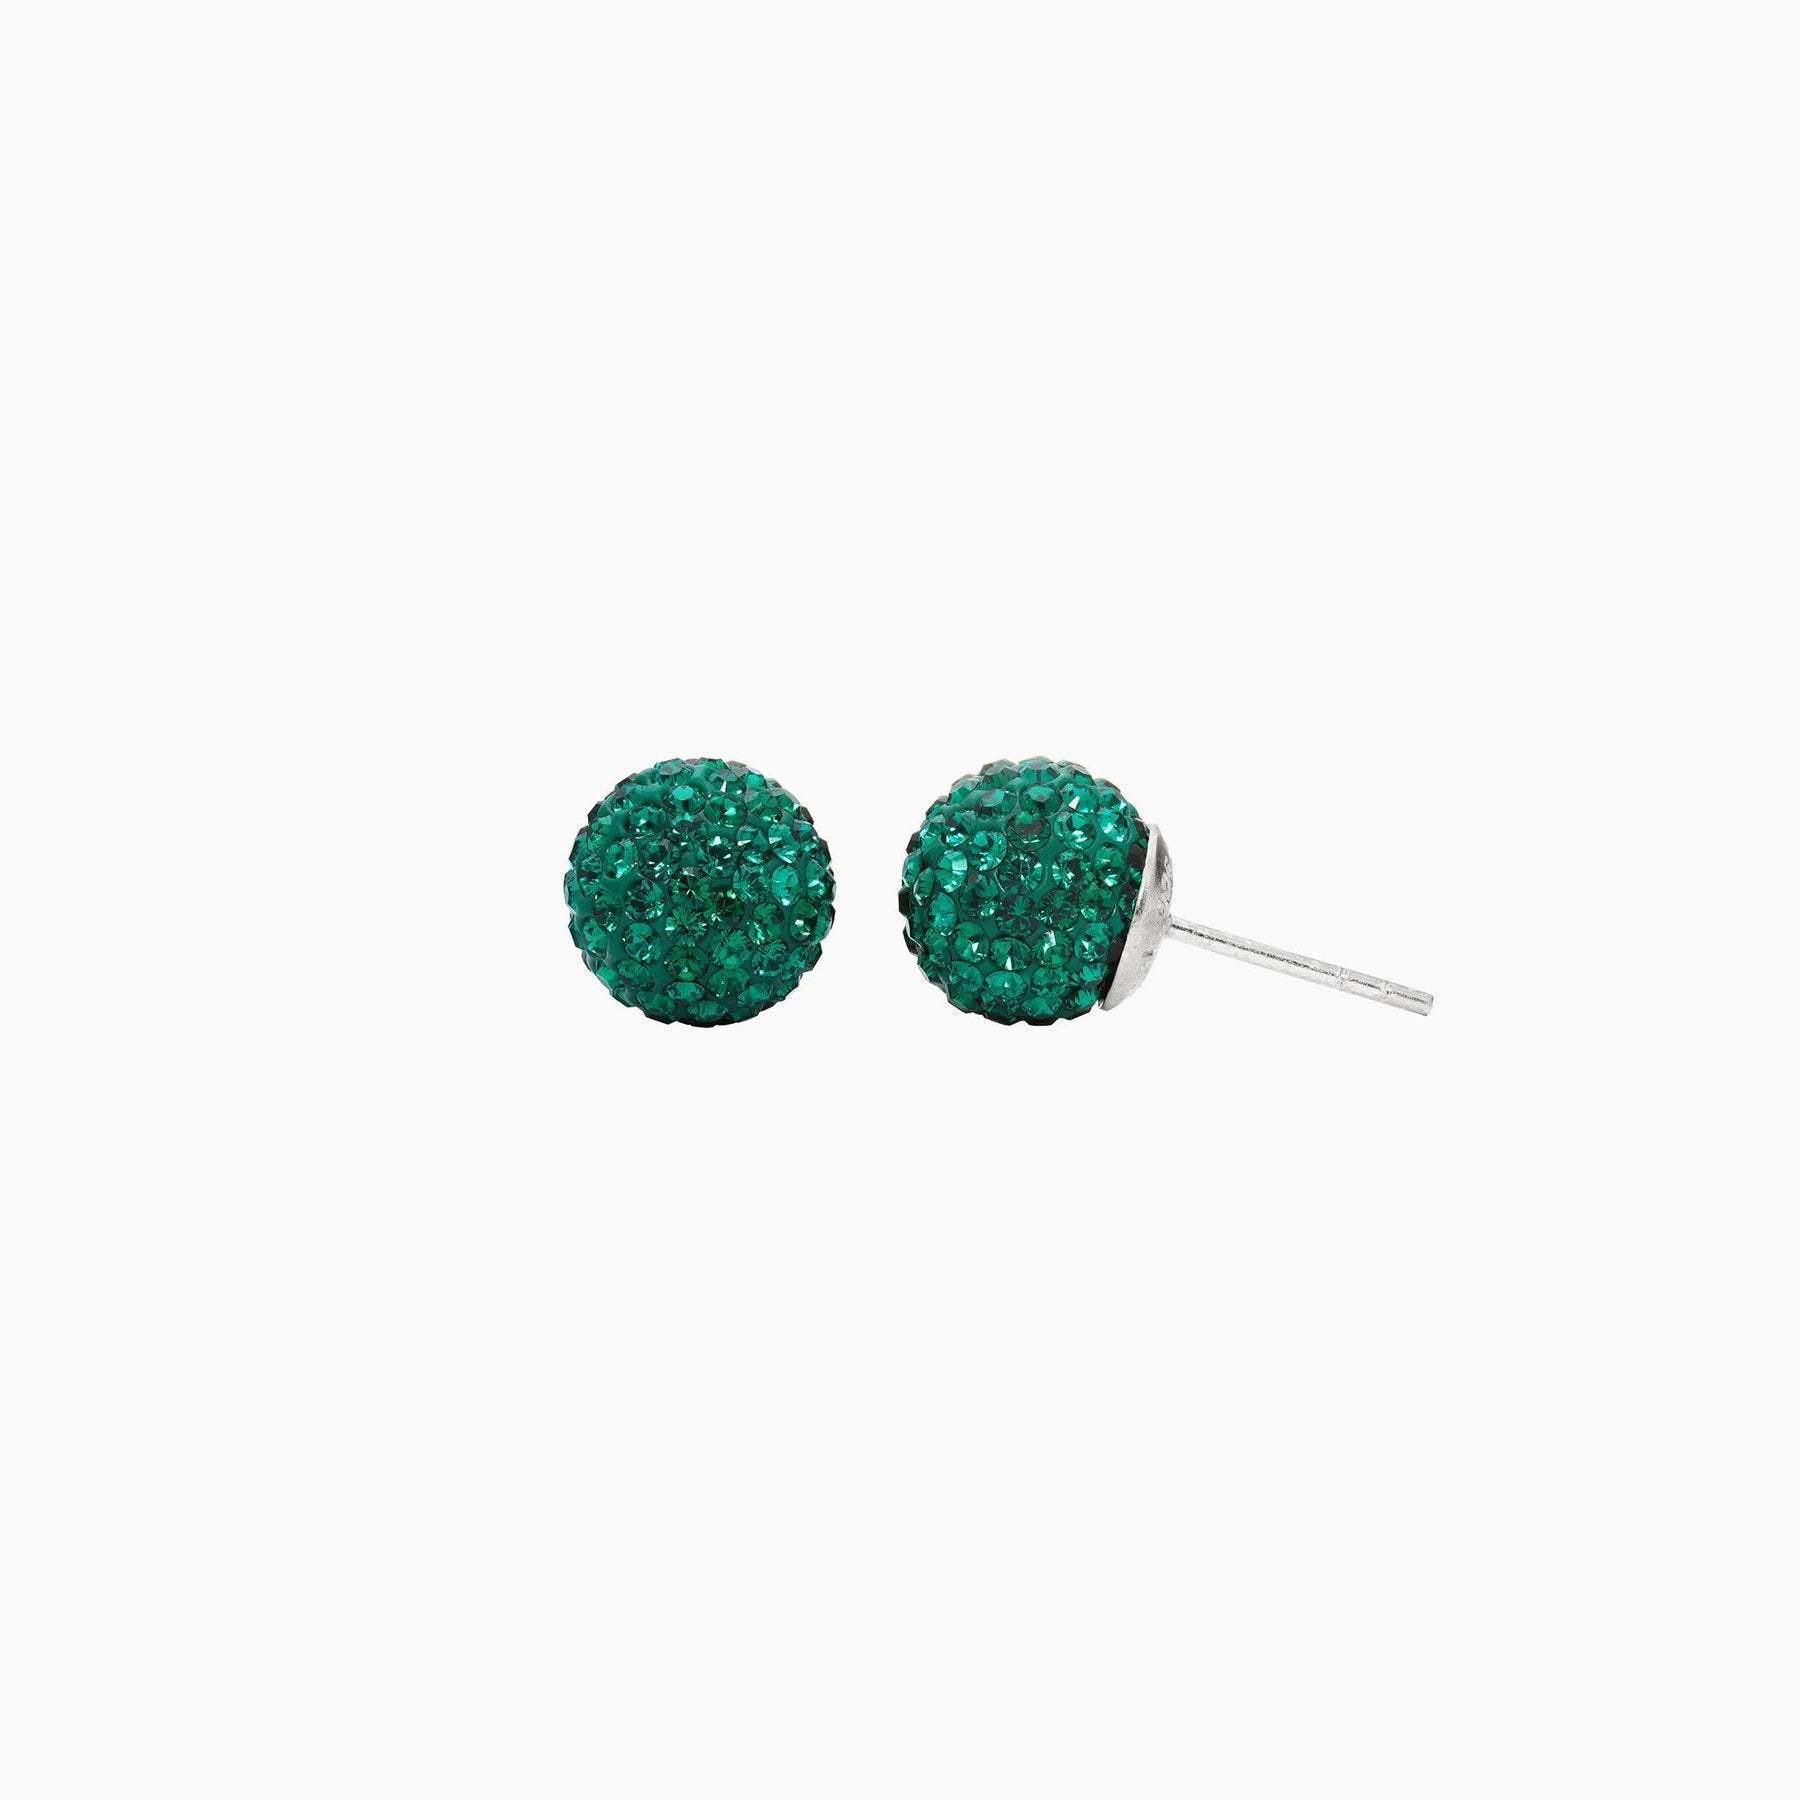 H&B Sparkle Ball™ Stud Earrings - 10mm Emerald